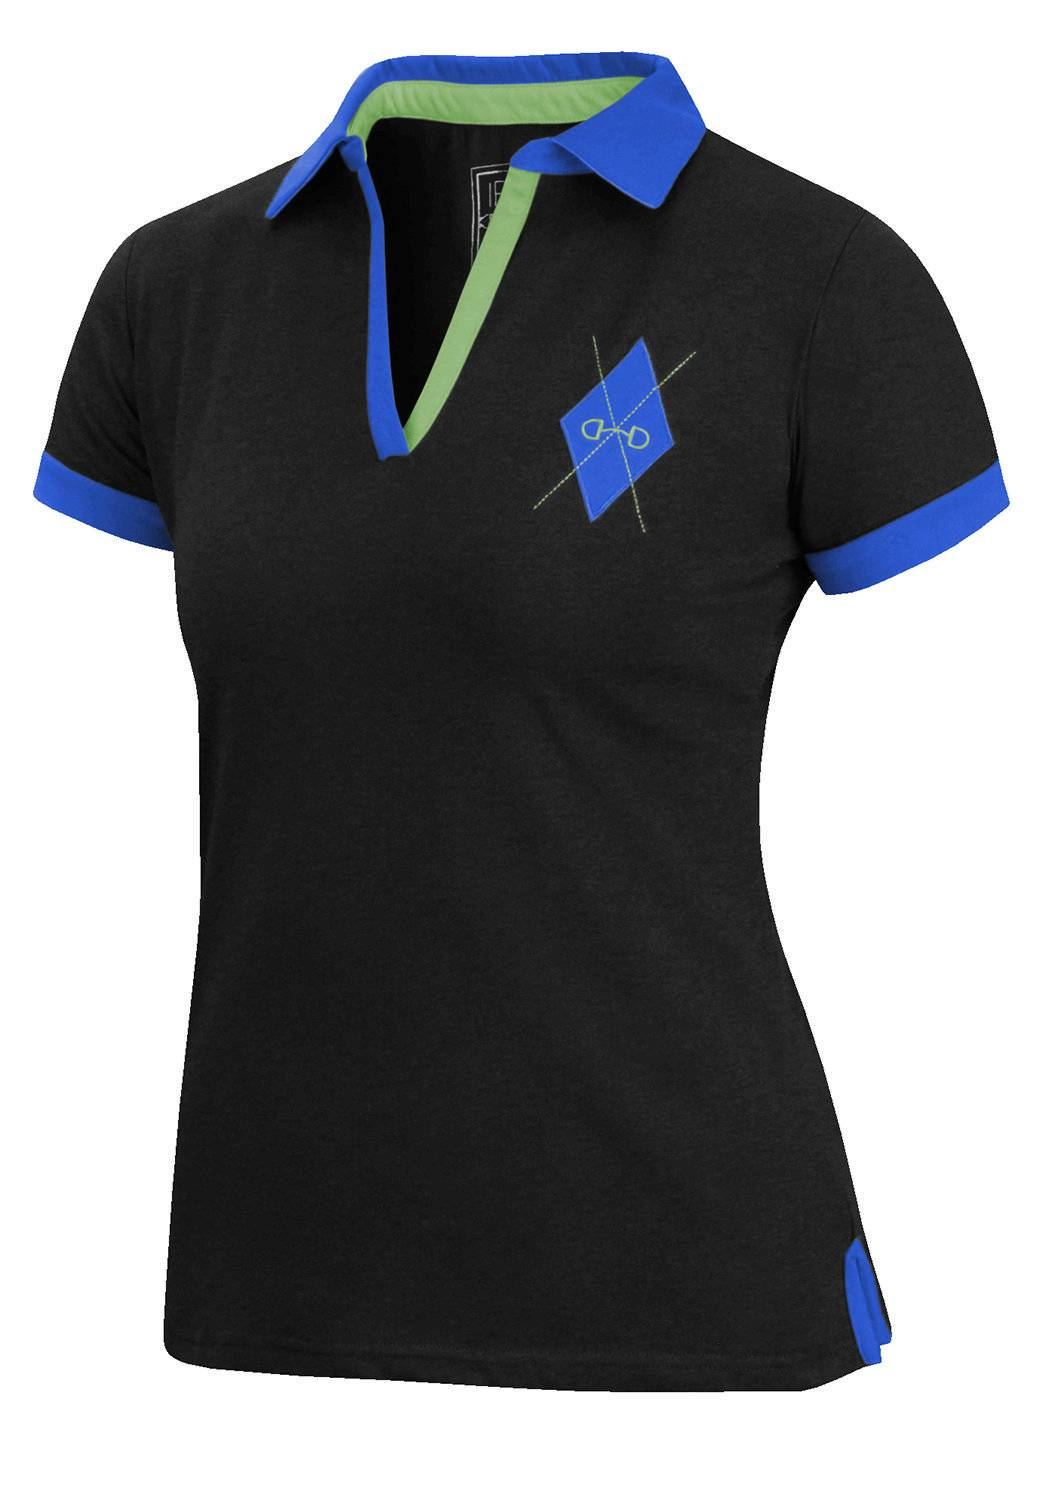 Irideon Women's Argyle Short Sleeve Polo